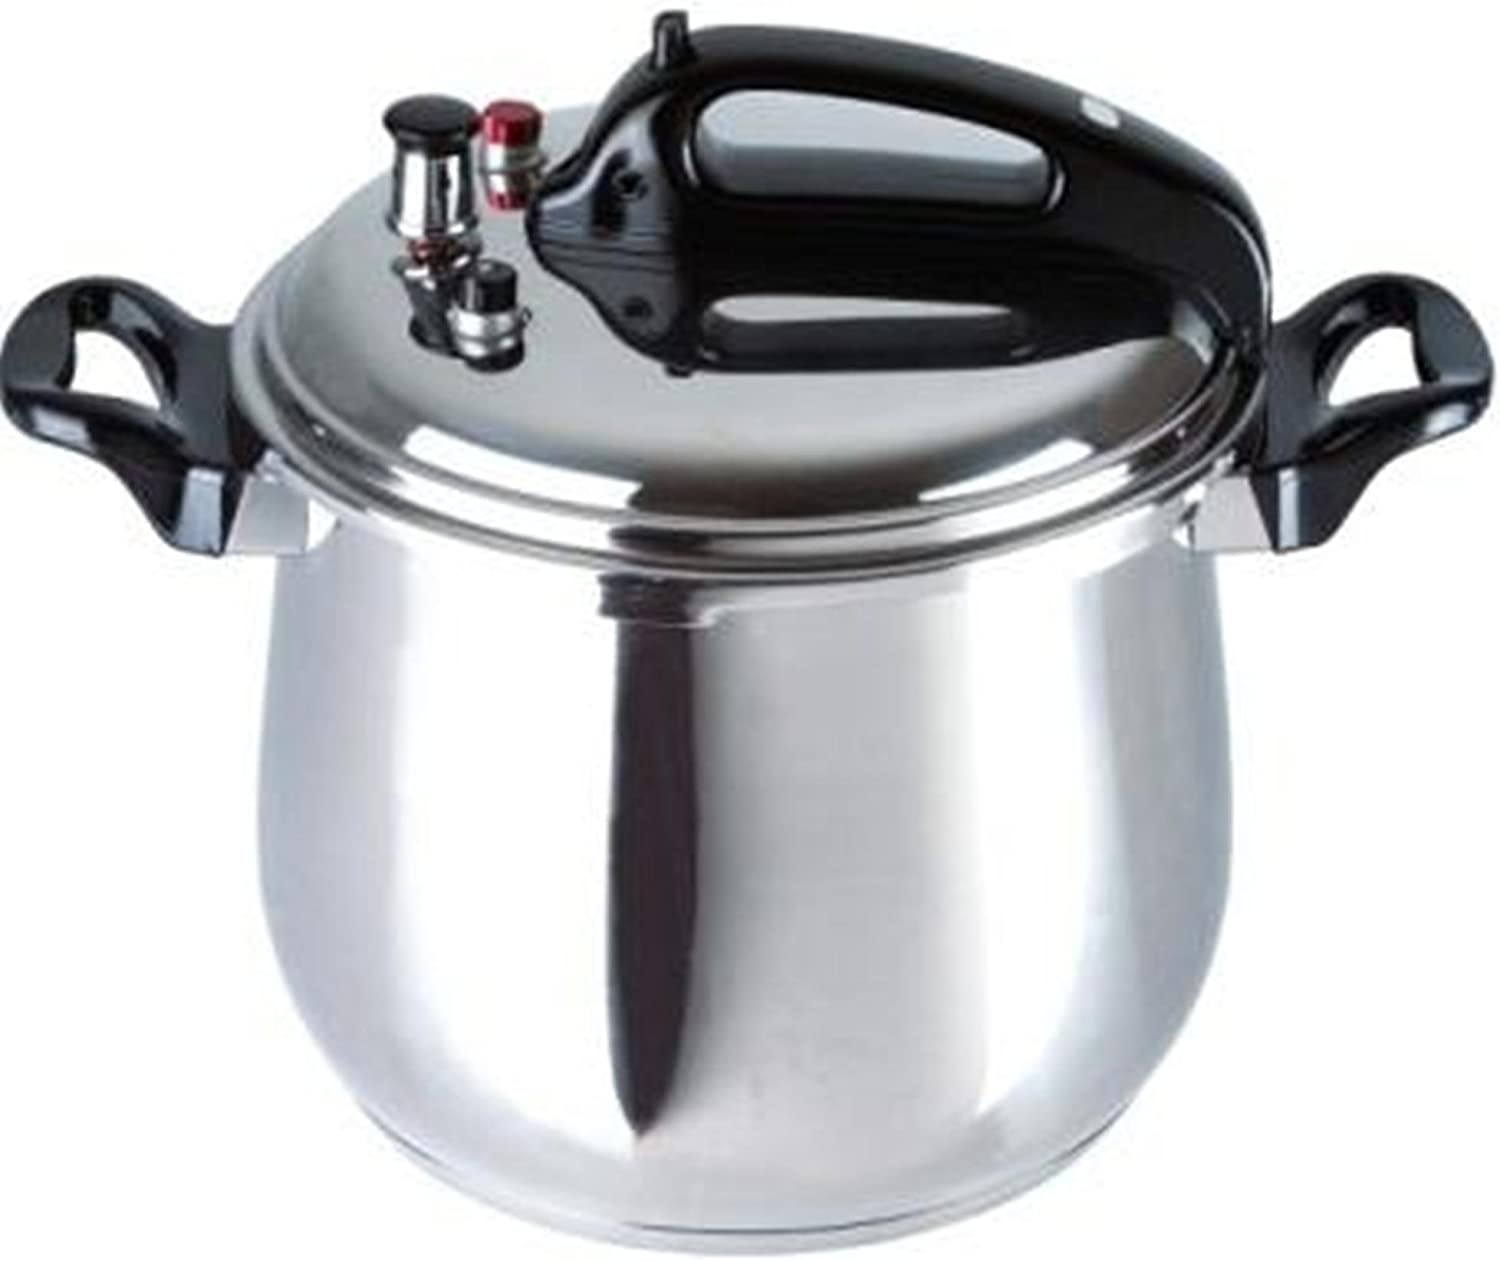 Benecasa Stainless Steel Pressure Cooker, 5.3-Quart